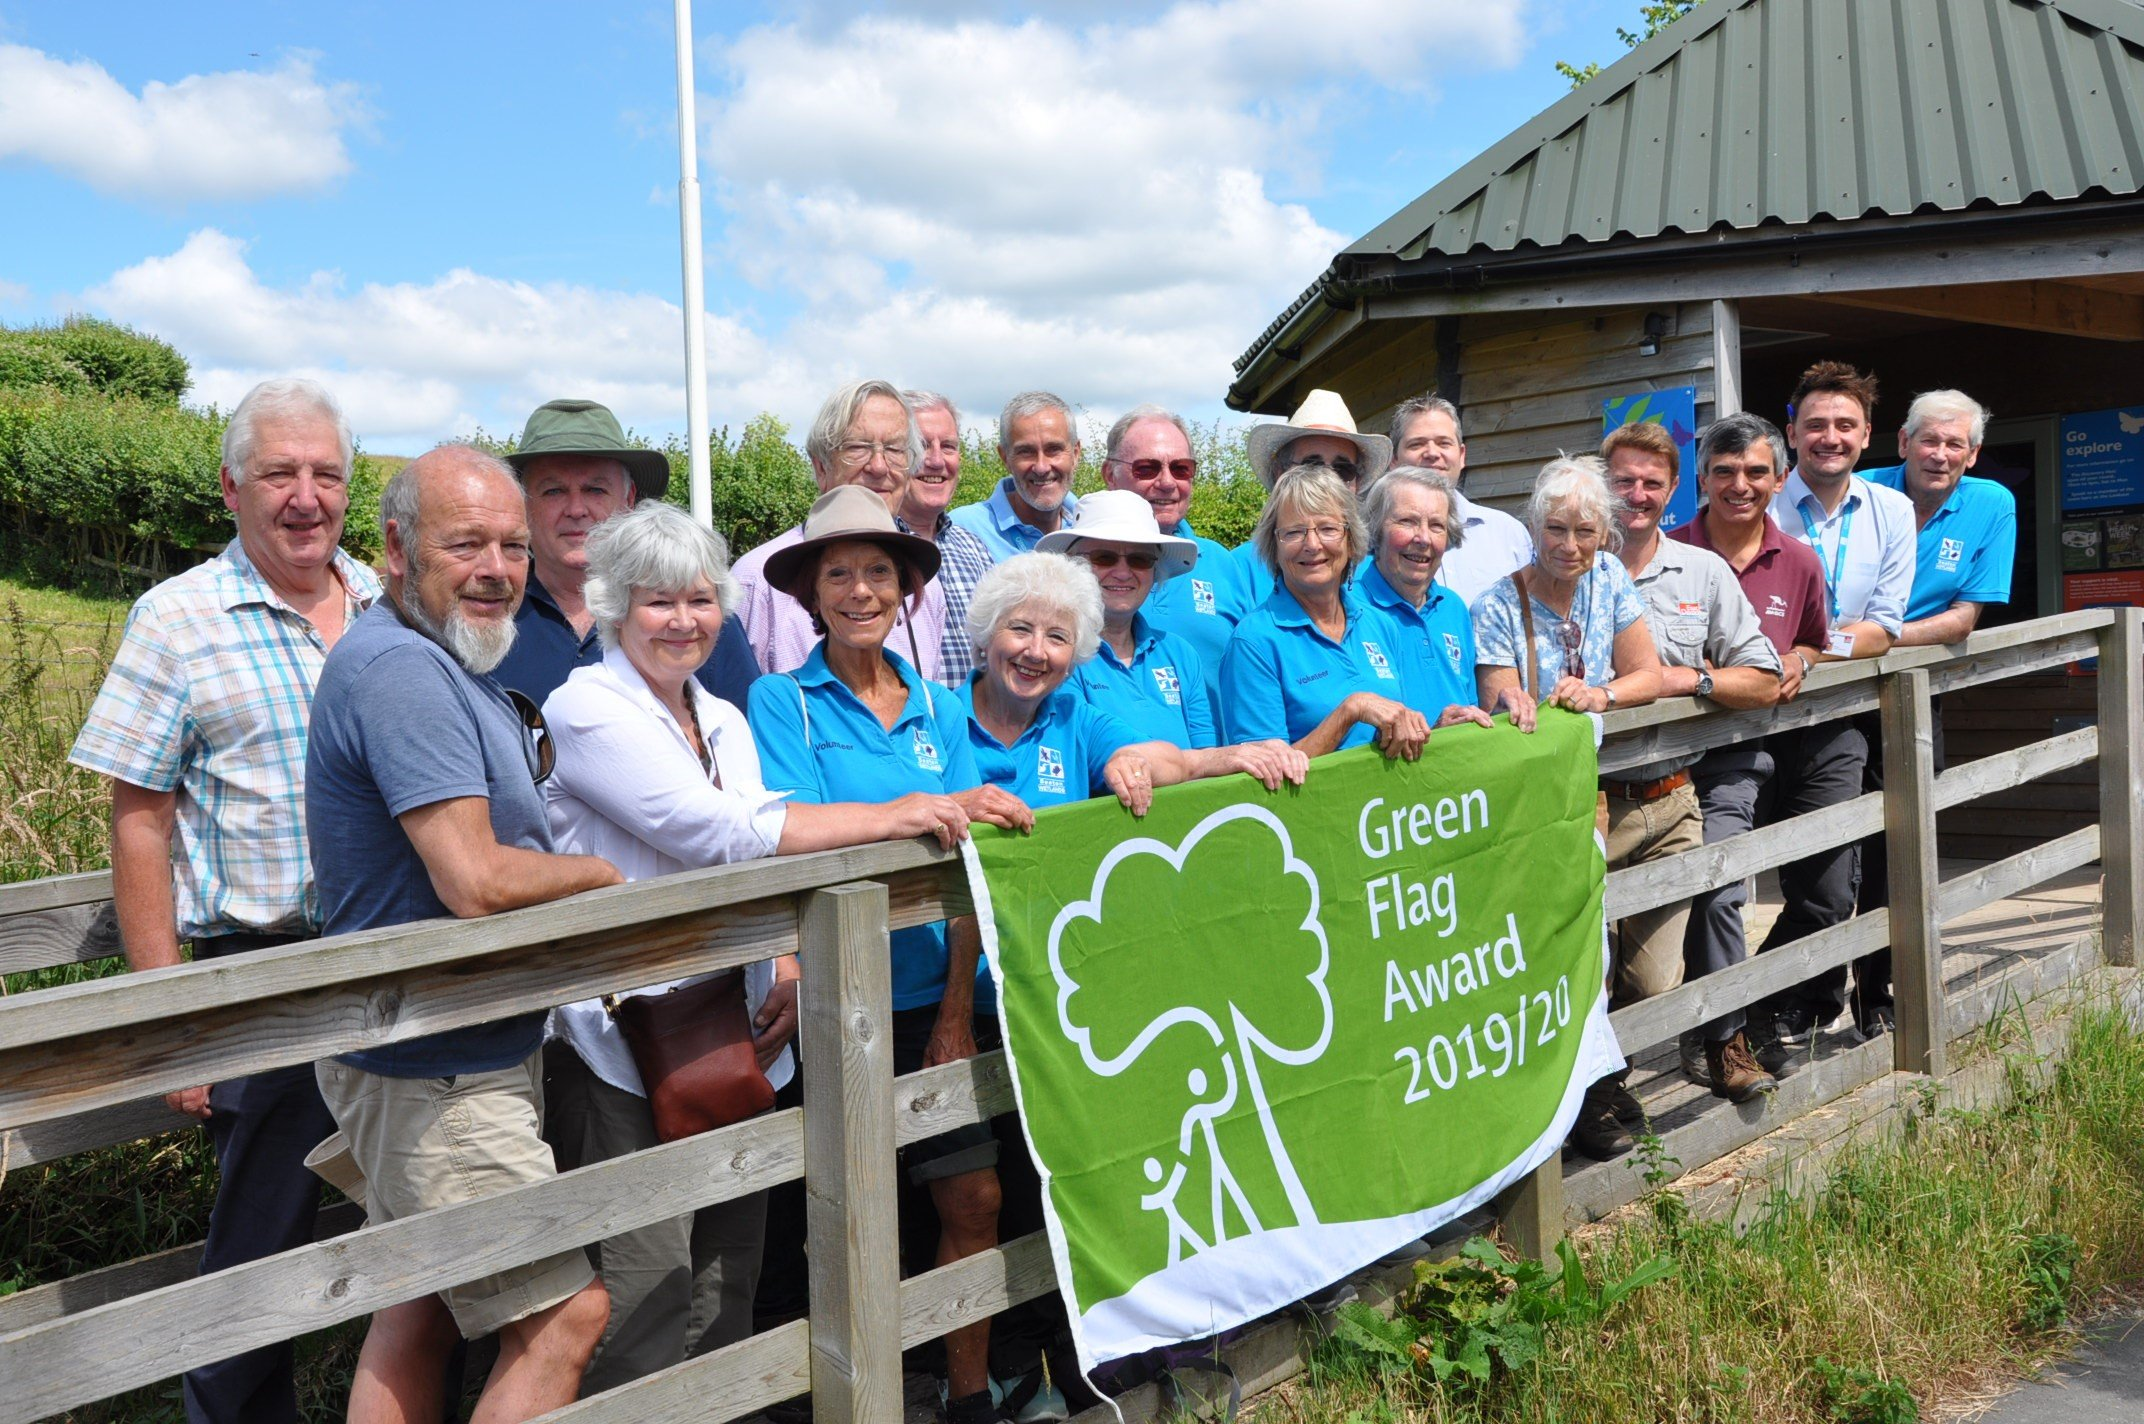 Seaton Wetlands: Volunteers, members of East Devon's Countryside team, ward members and East Devon's environment portfolio holder Cllr Jung celebrating Seaton Wetlands' Green Flag Award. Photo: EDDC